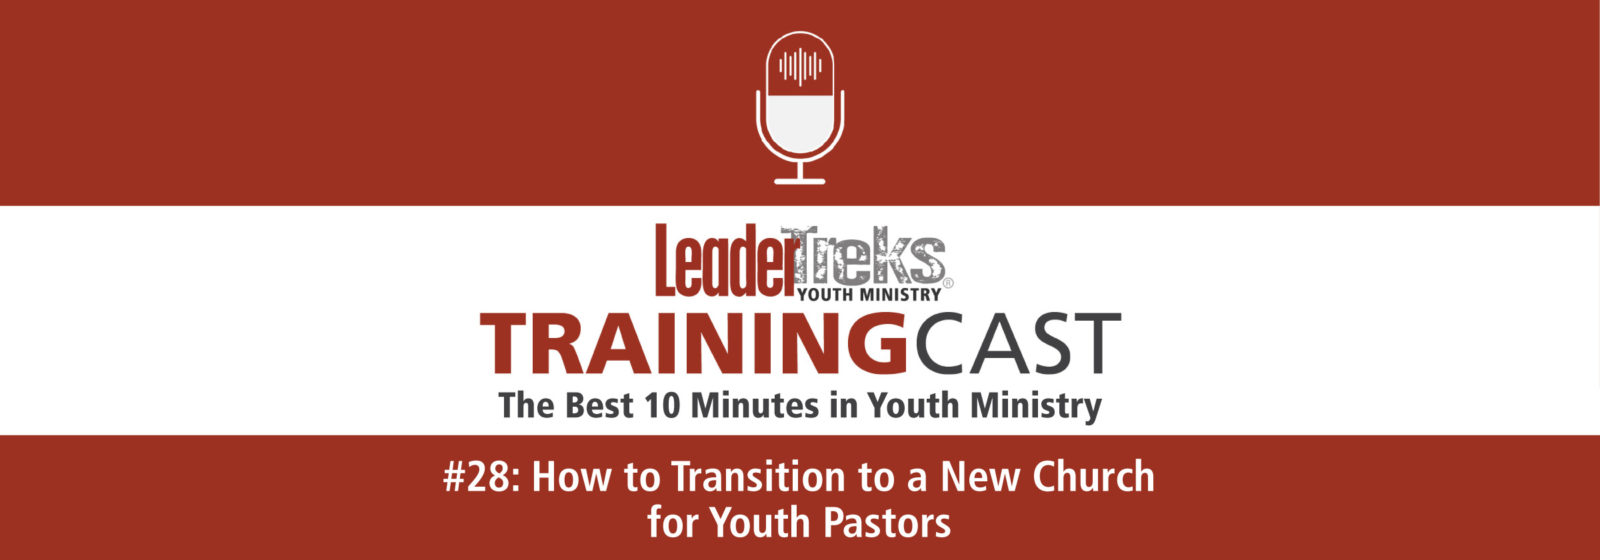 how to transition to a new church for youth pastors trainingcast 28